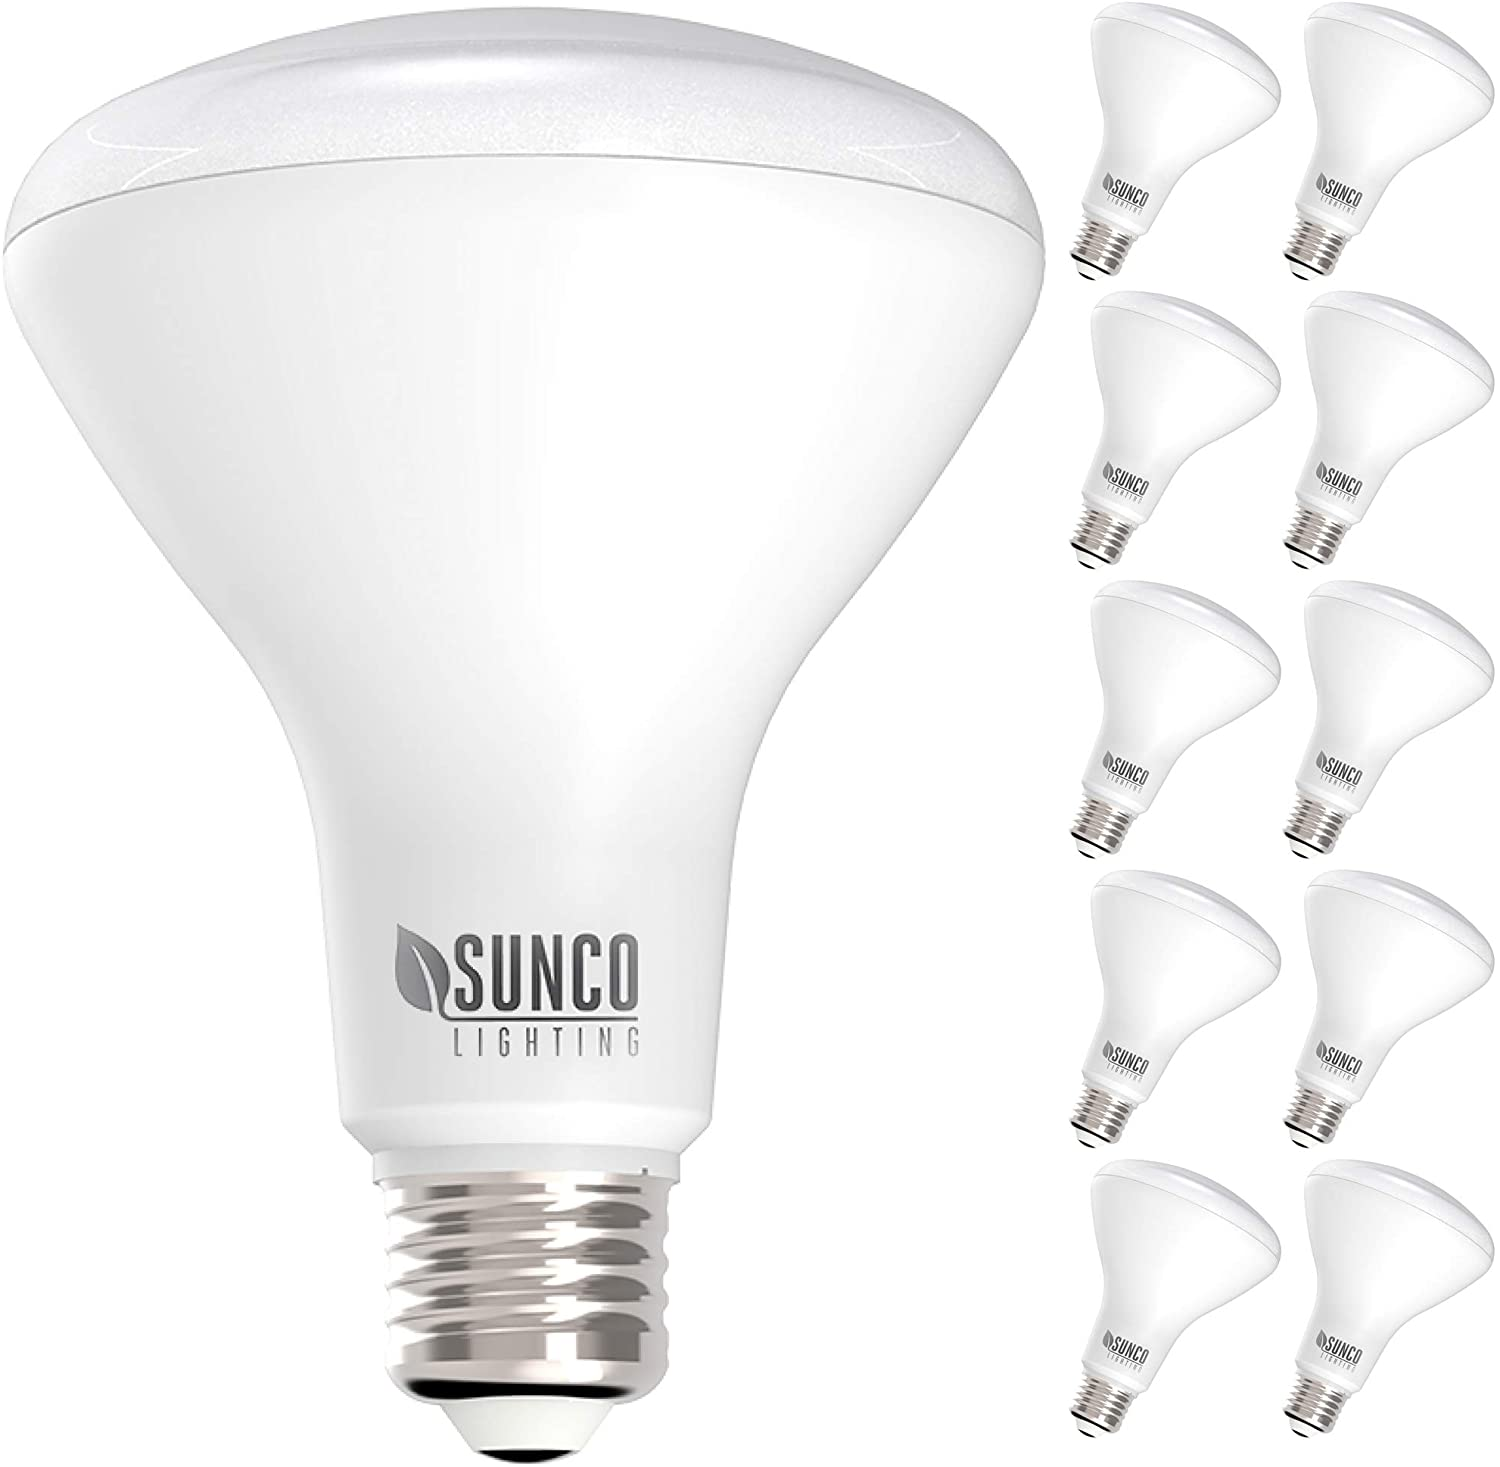 4000K Cool White Sunco Lighting 10 Pack BR40 LED Bulb E26 base 17W=100W UL /& Energy Star Indoor Flood Light for Cans Dimmable Renewed